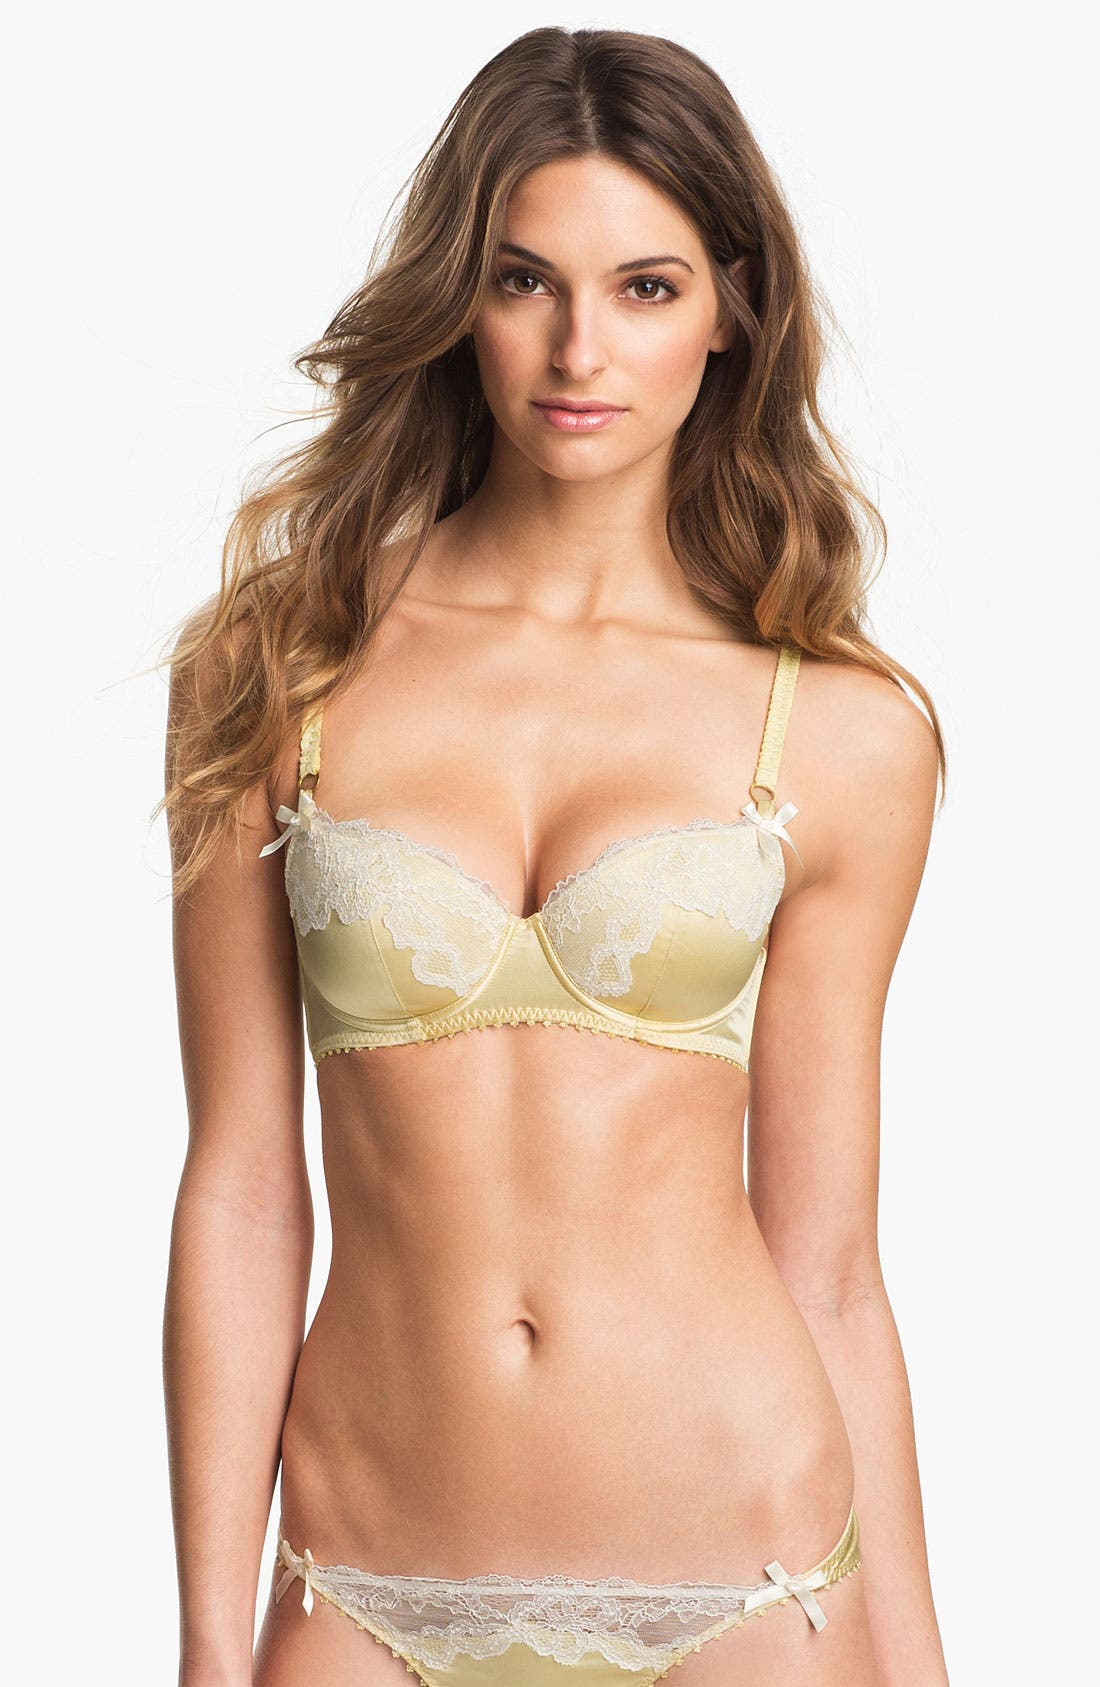 Alternate Image 1 Selected - Stella McCartney 'Angela Grazing' Underwire Balconette Bra